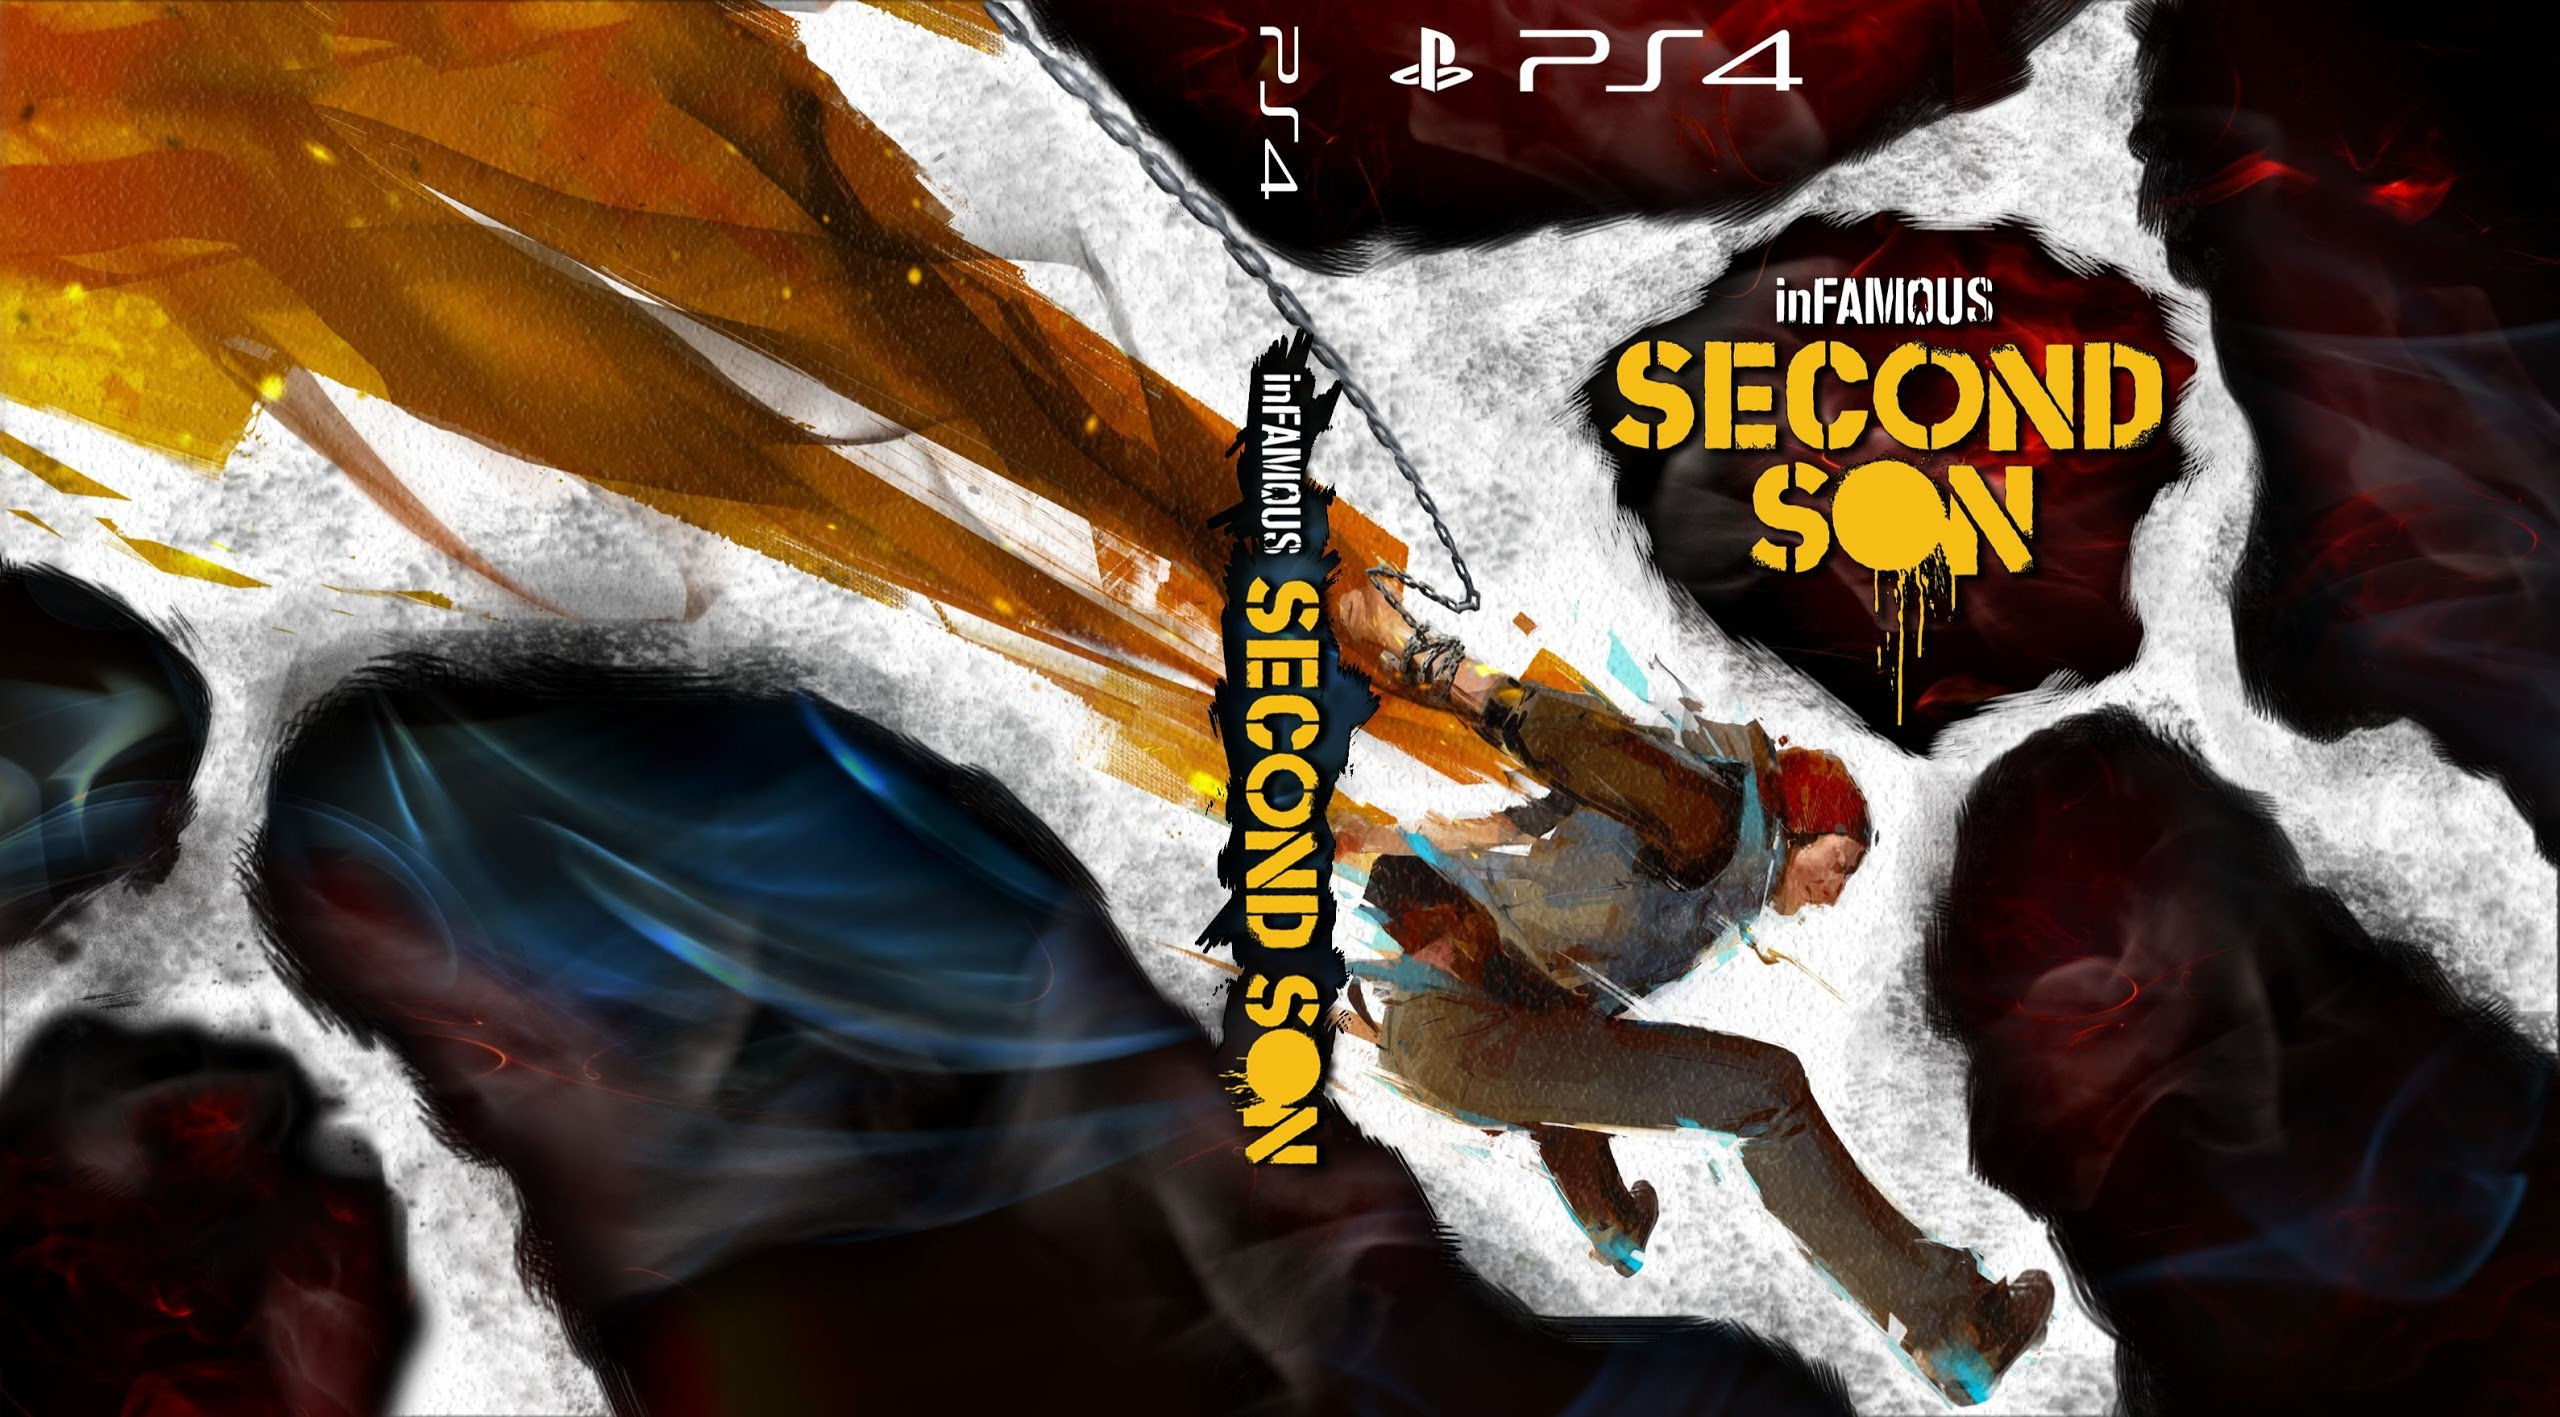 InFAMOUS SECOND SON sci-fi action adventure poster wallpaper   2560x1417   308588   WallpaperUP